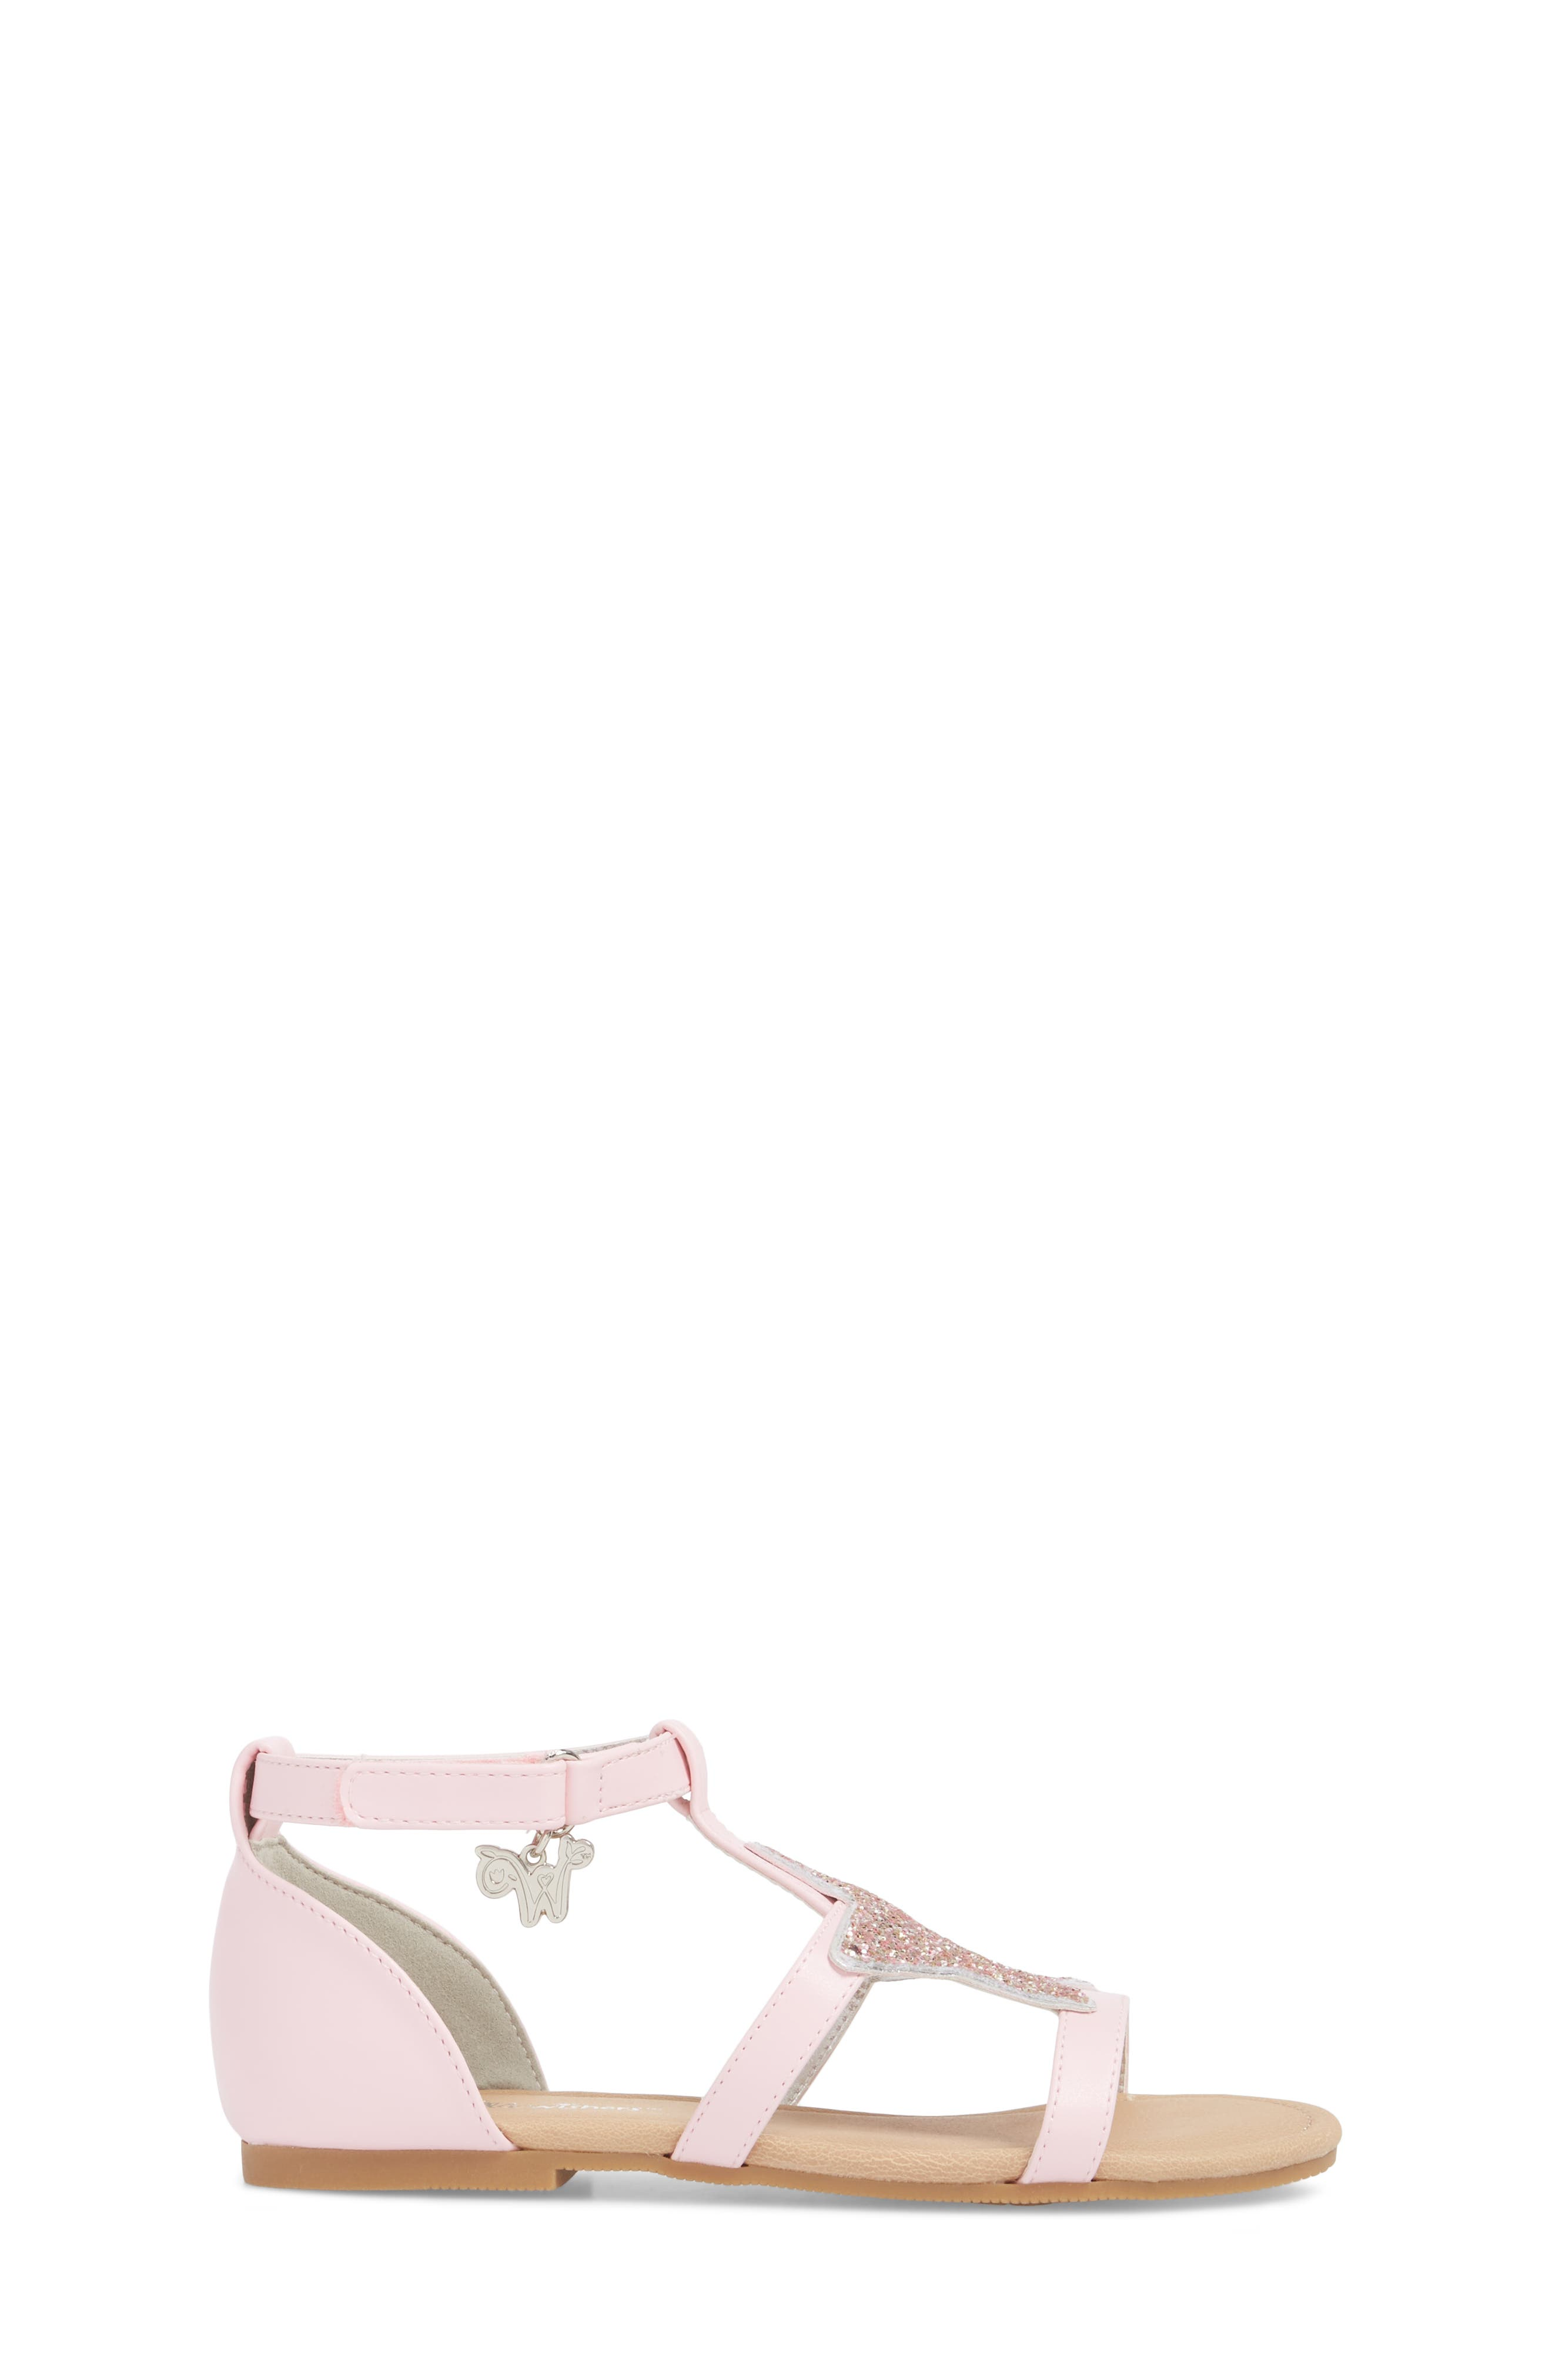 Emerson Glitter Star Sandal,                             Alternate thumbnail 3, color,                             Orchid Pink